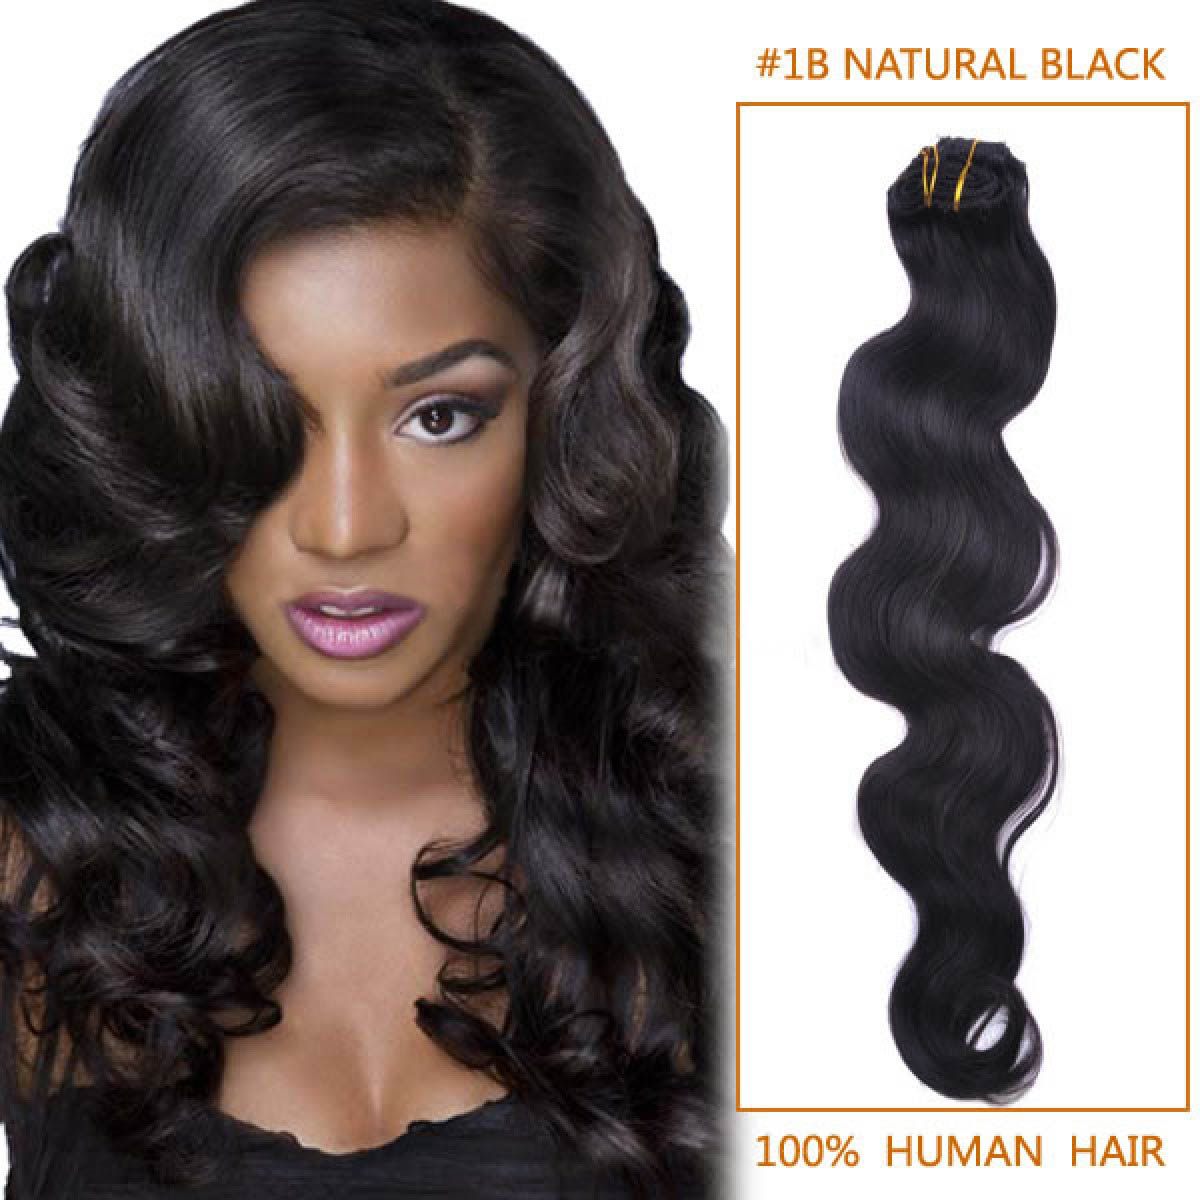 18 Inch #1b Natural Black Body Wave Brazilian Virgin Hair